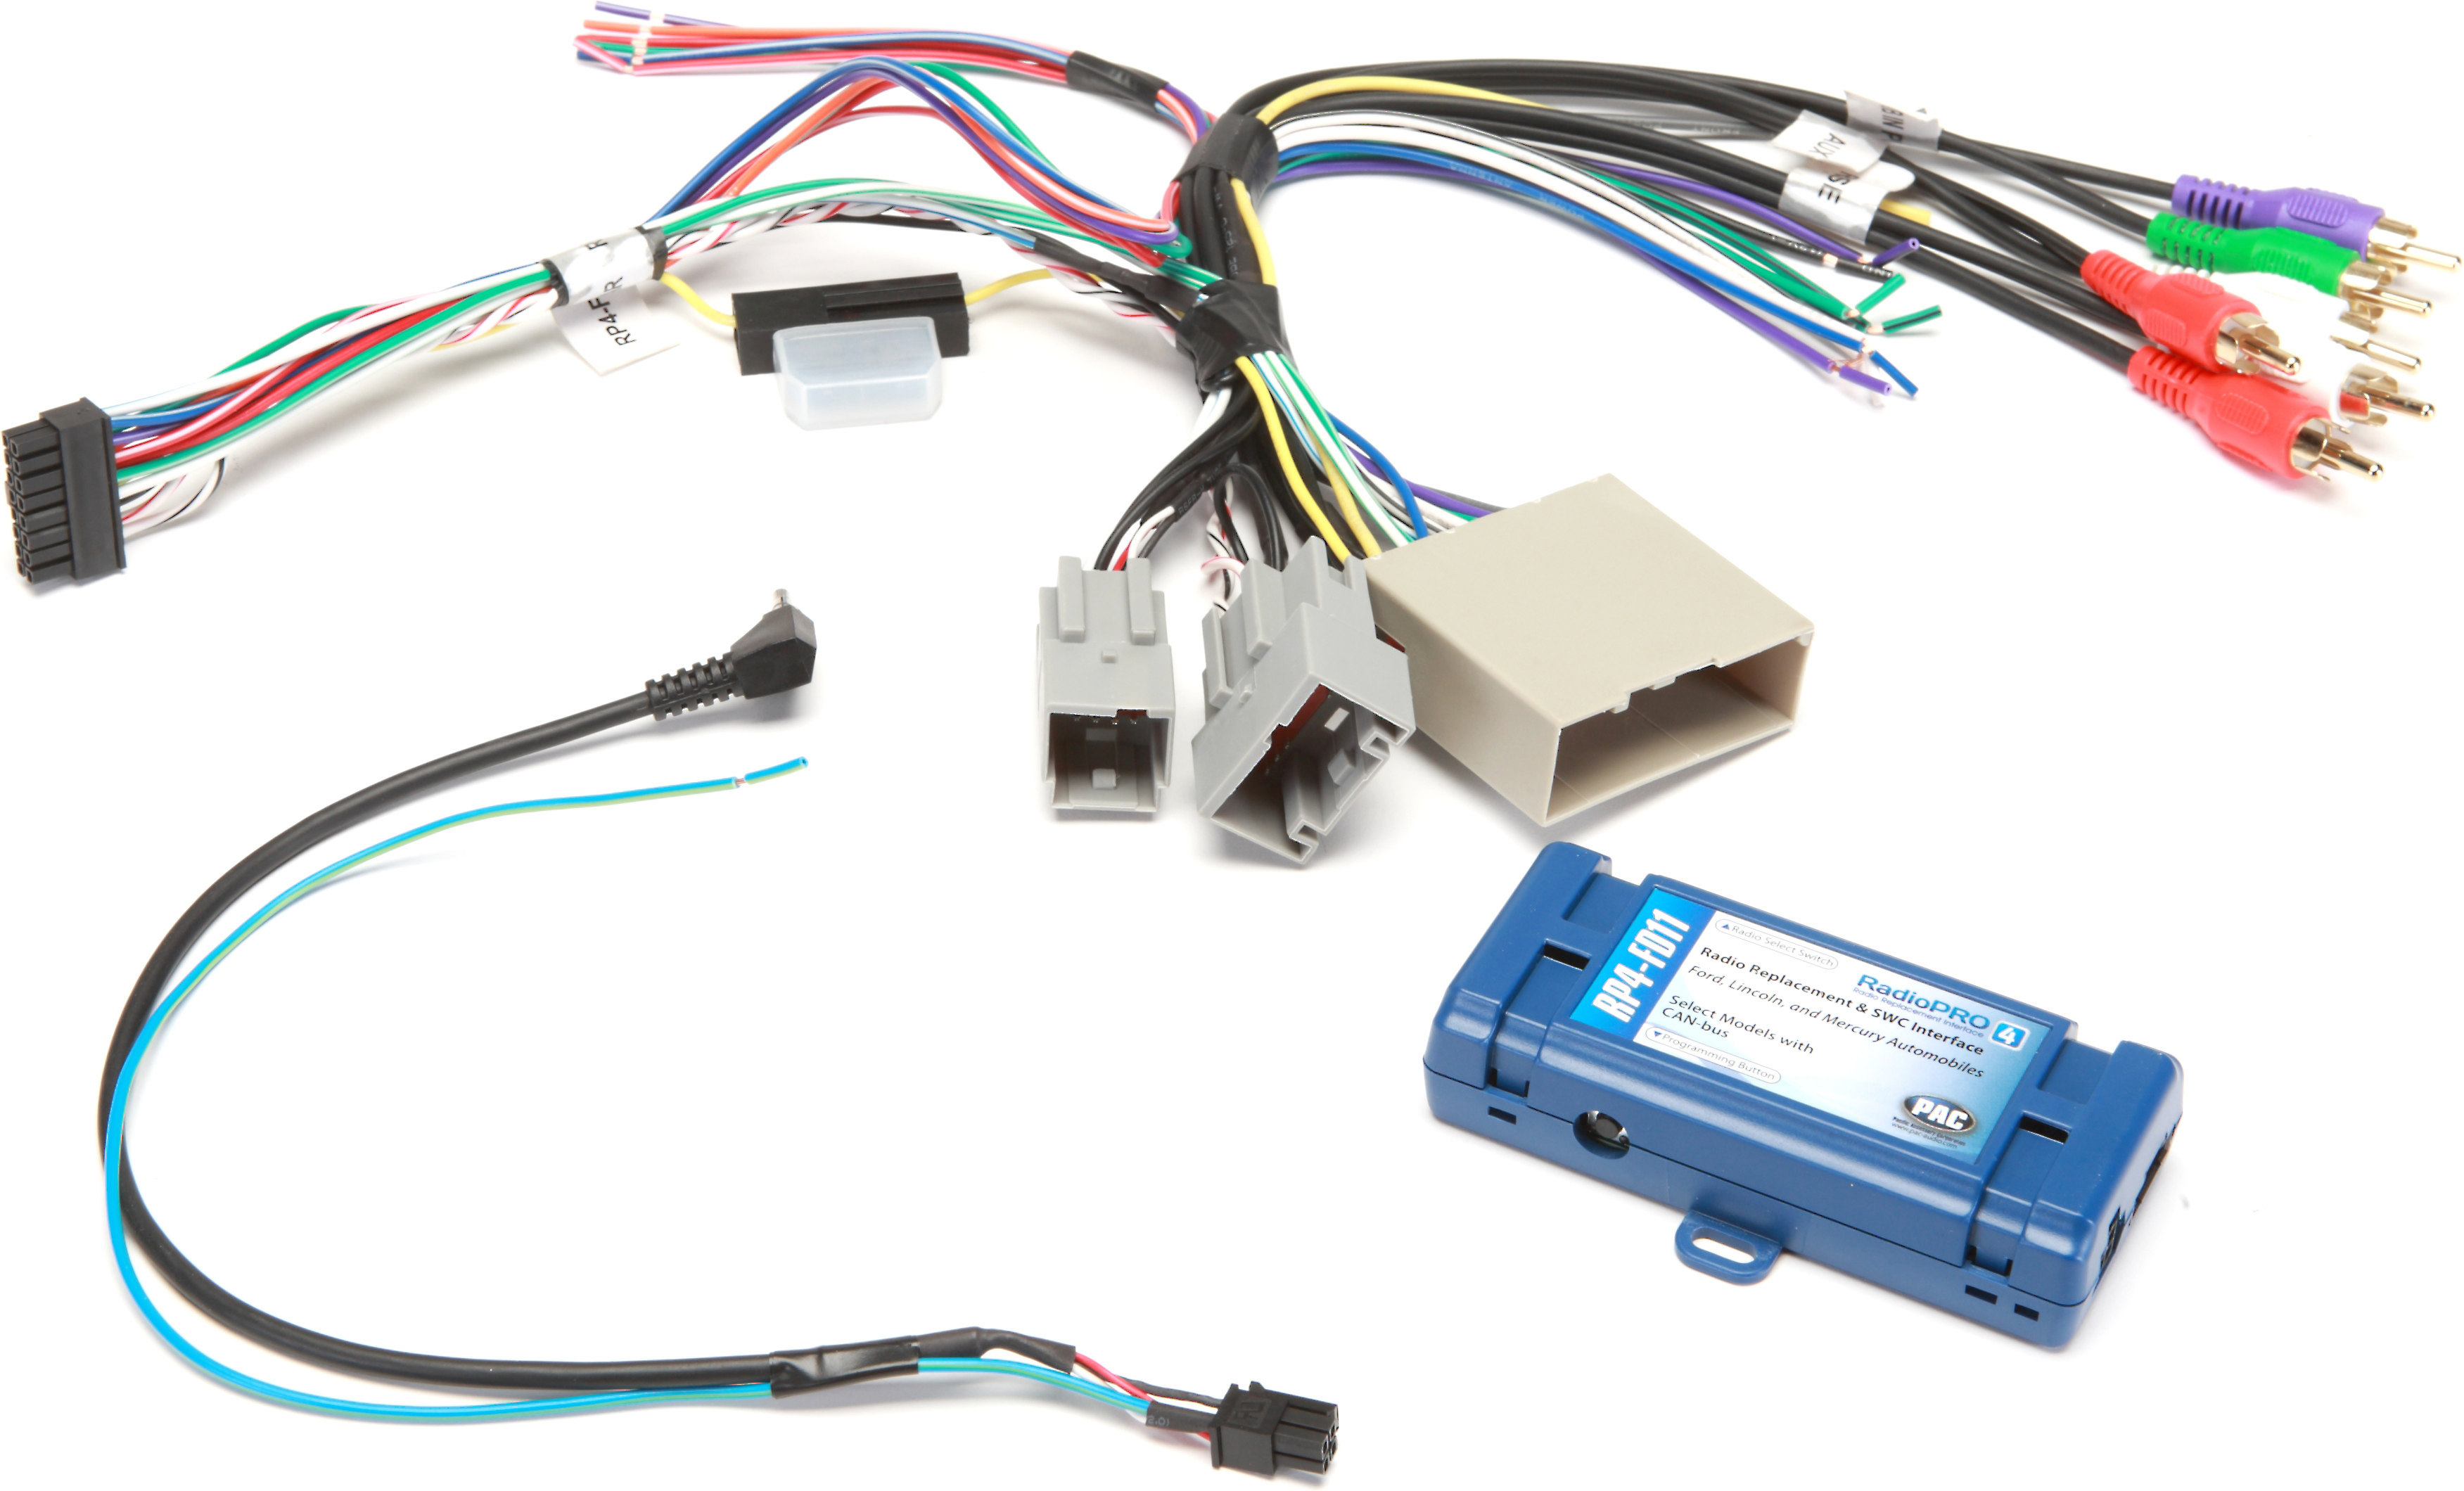 jensen car stereo wiring harness pac rp4 fd11    wiring    interface connect a new    car       stereo    and  pac rp4 fd11    wiring    interface connect a new    car       stereo    and